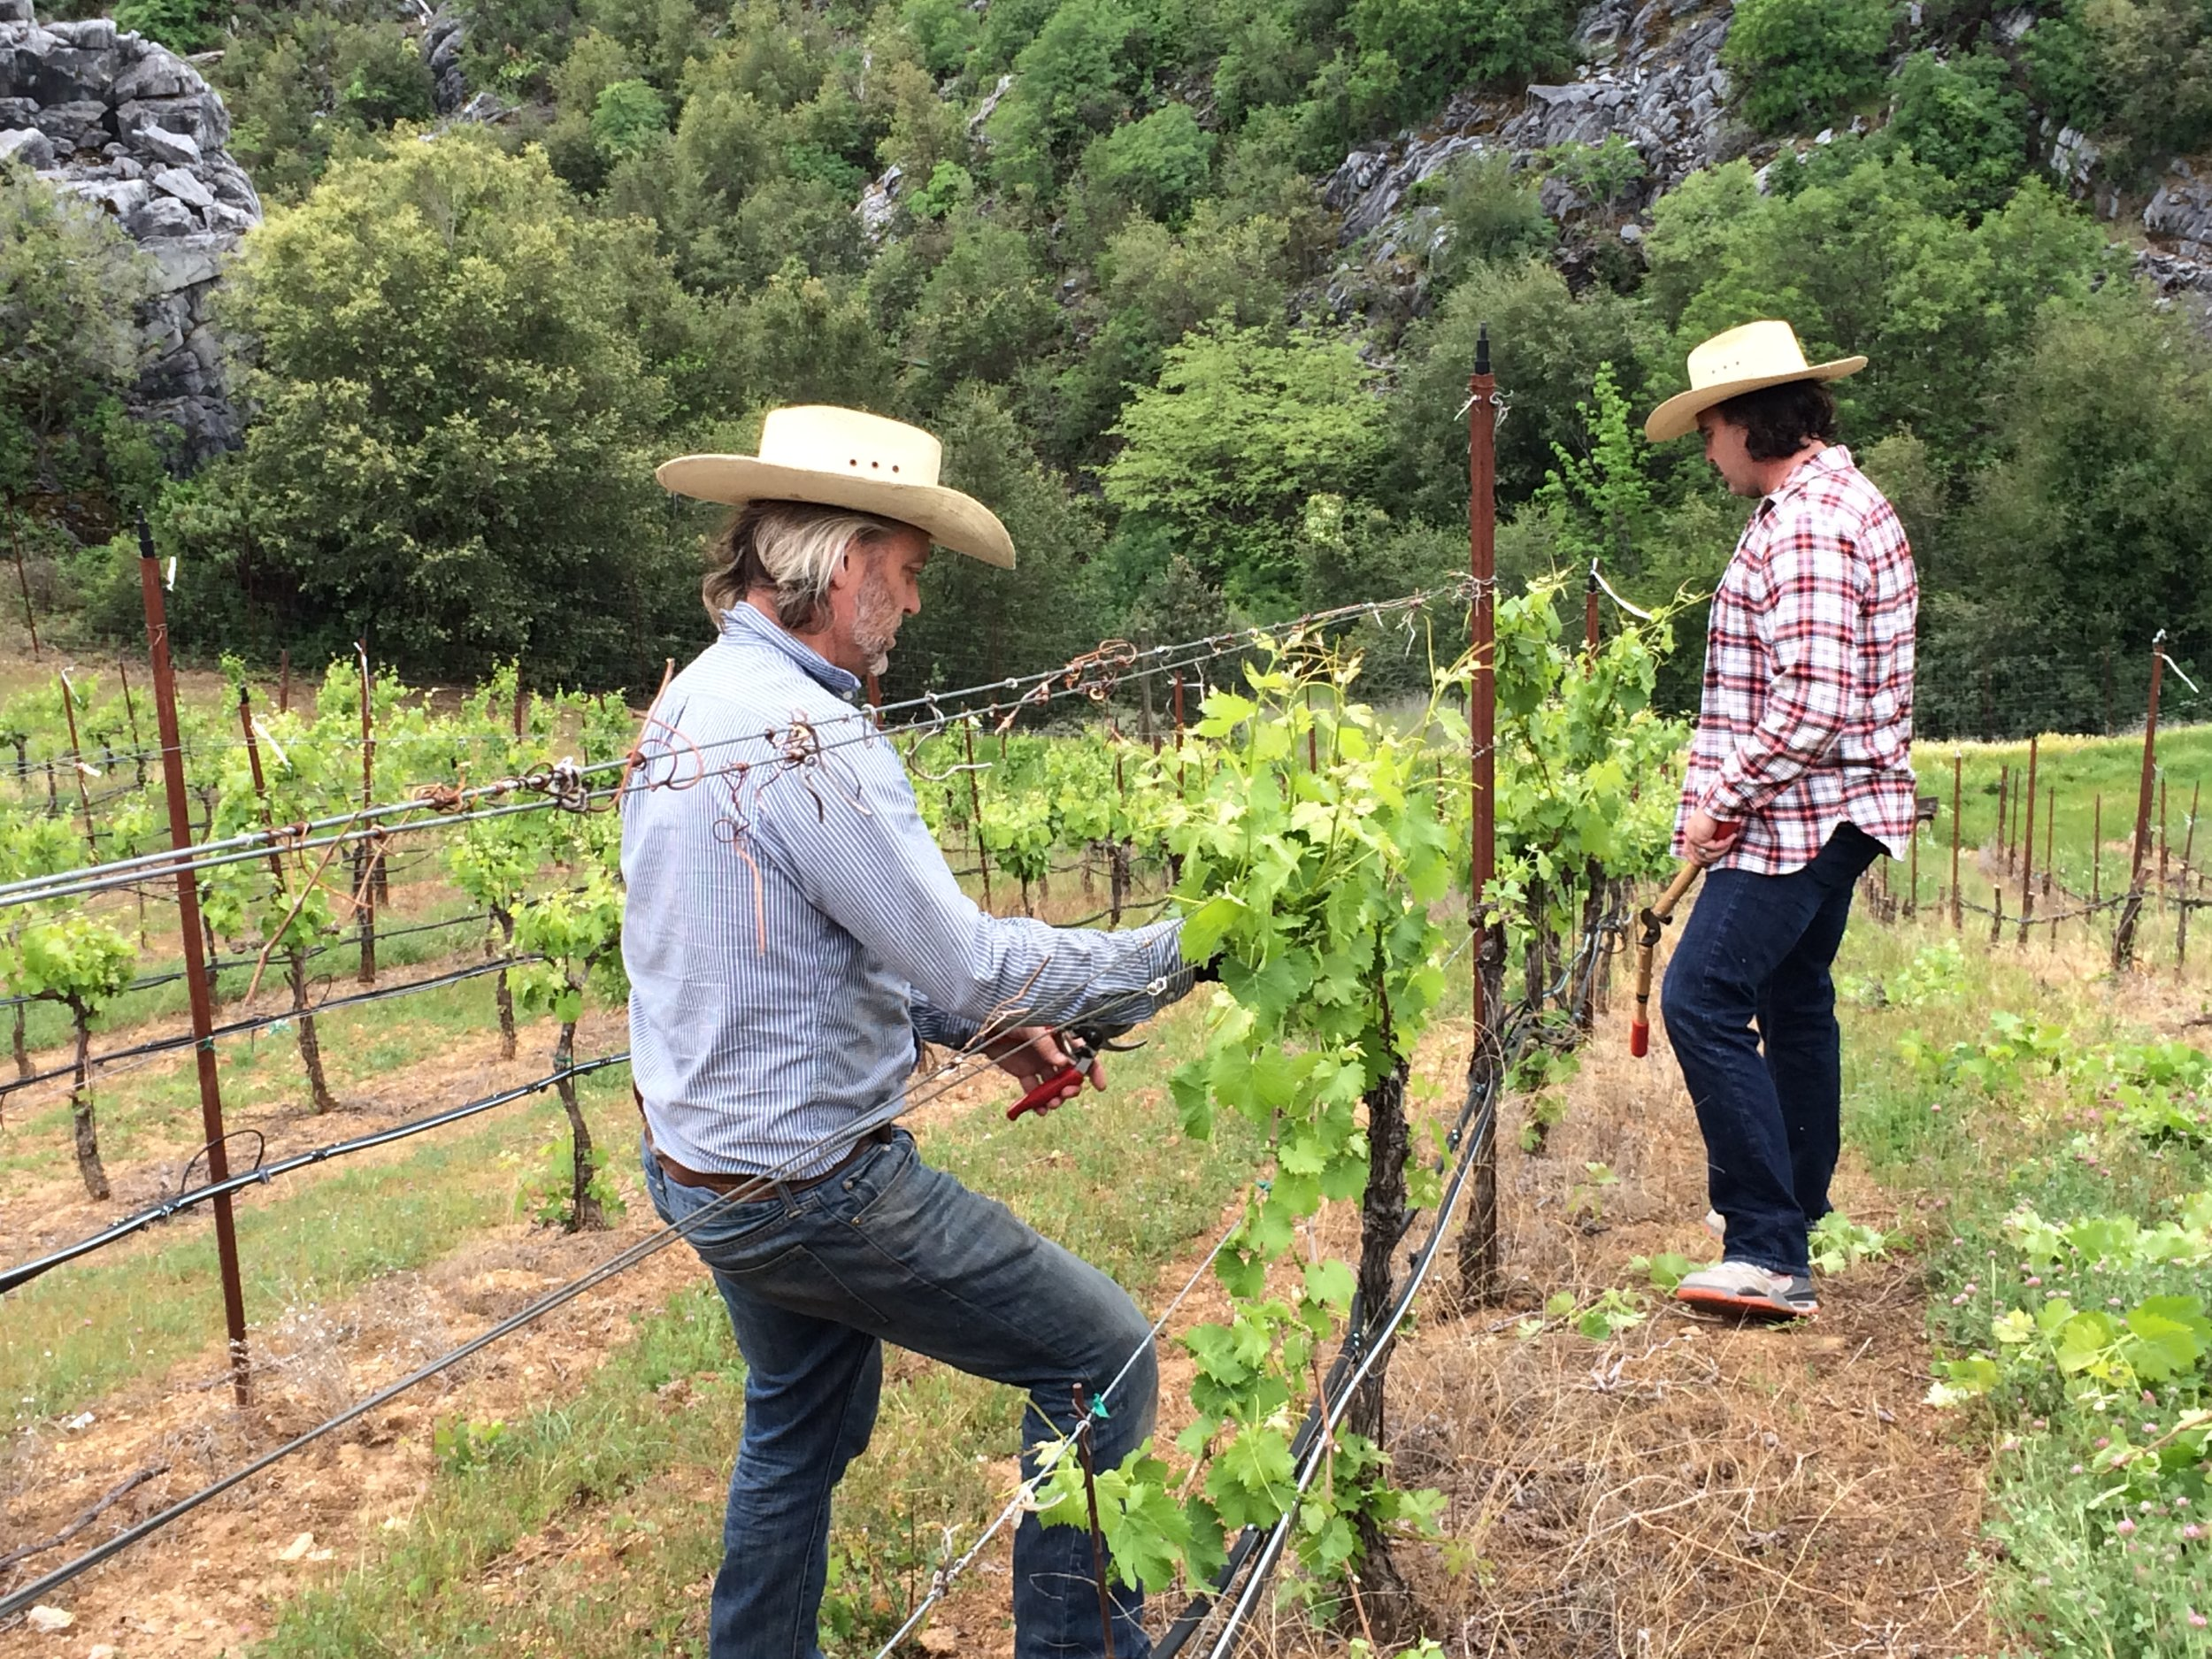 Two winemakers cutting back vines